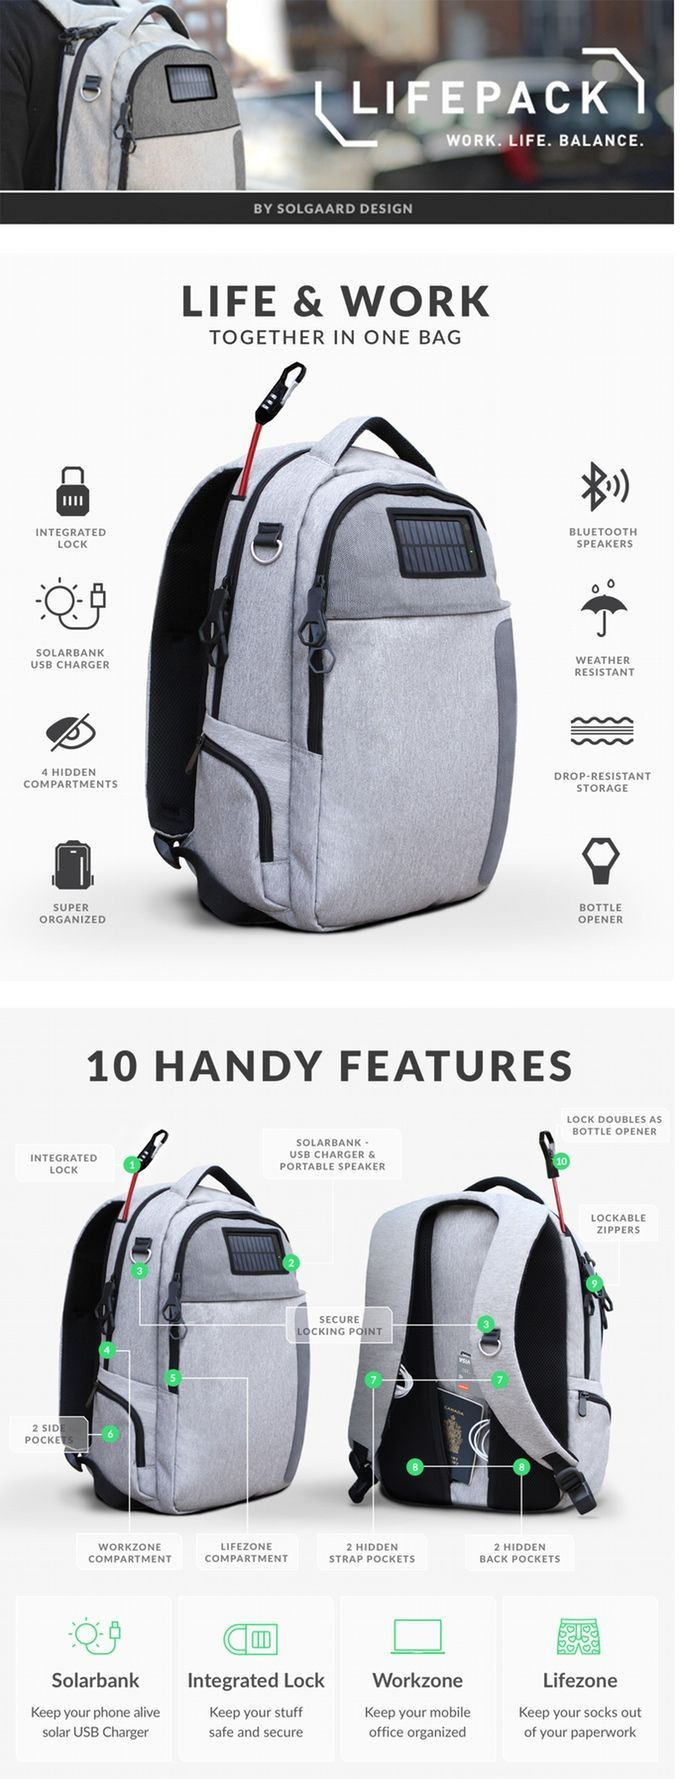 10 Of The Most Unique & Unusual Backpacks Your Creative Eyes Will Ever See - [http://theendearingdesigner.com/10-unique-funniest-backpacks-will-boggle-creative-eyes/]